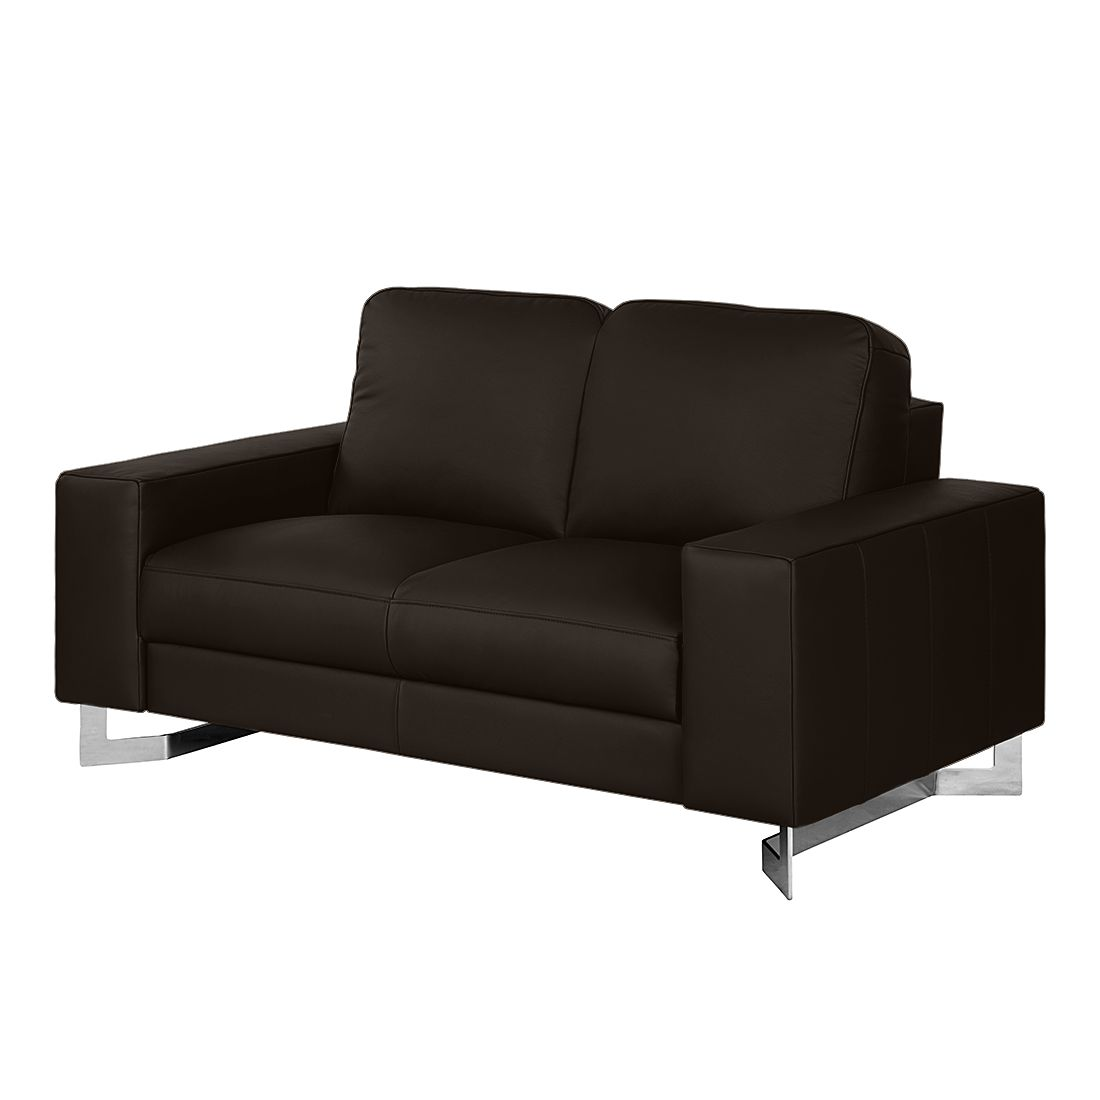 sofa licata 2 sitzer echtleder dunkelbraun nuovoform g nstig. Black Bedroom Furniture Sets. Home Design Ideas